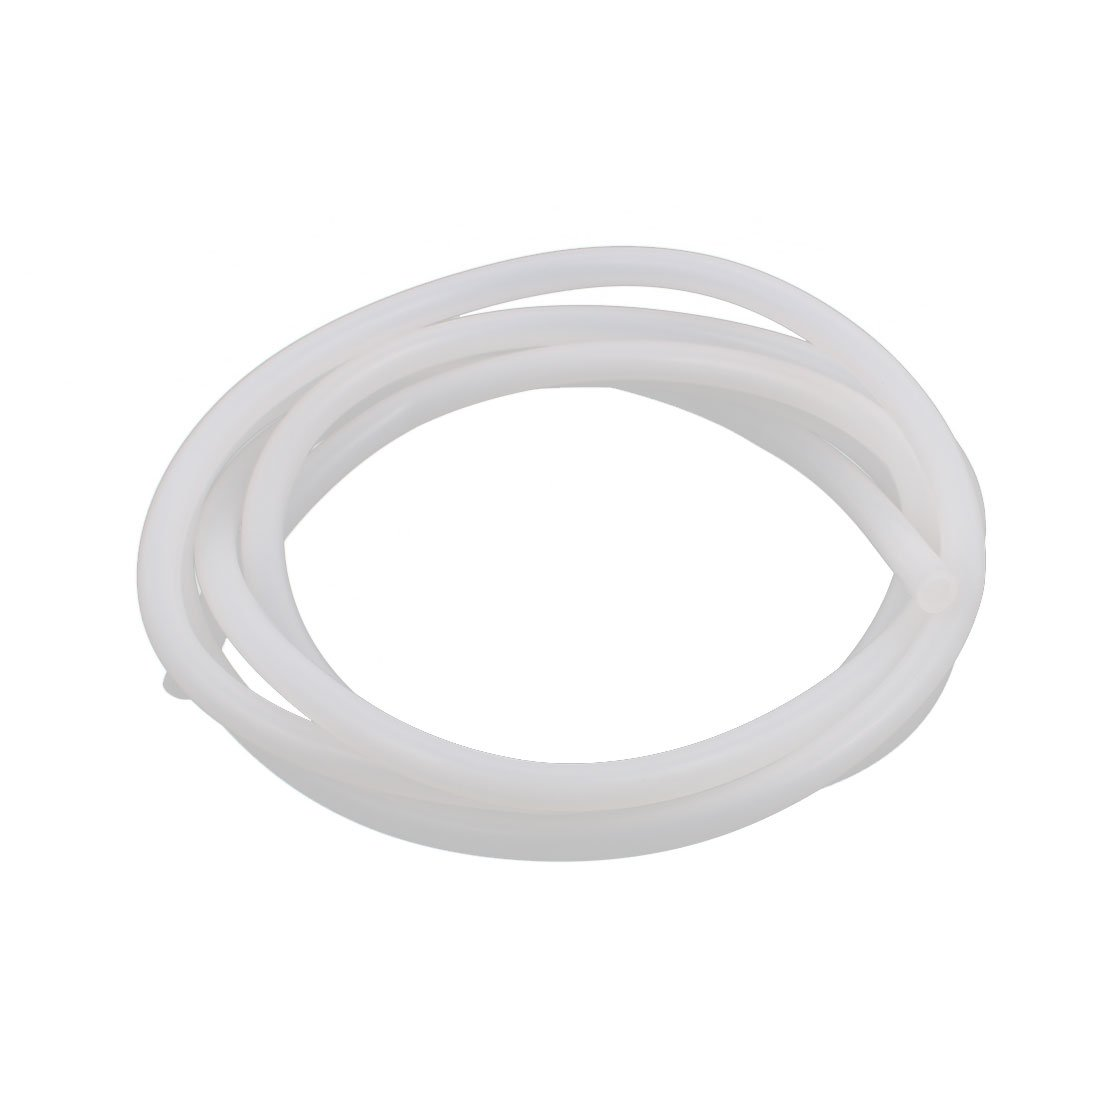 uxcell 5 x 8mm Translucent Silicone Tube Water Hose Pipe 2 Meters Length a16092700ux0272